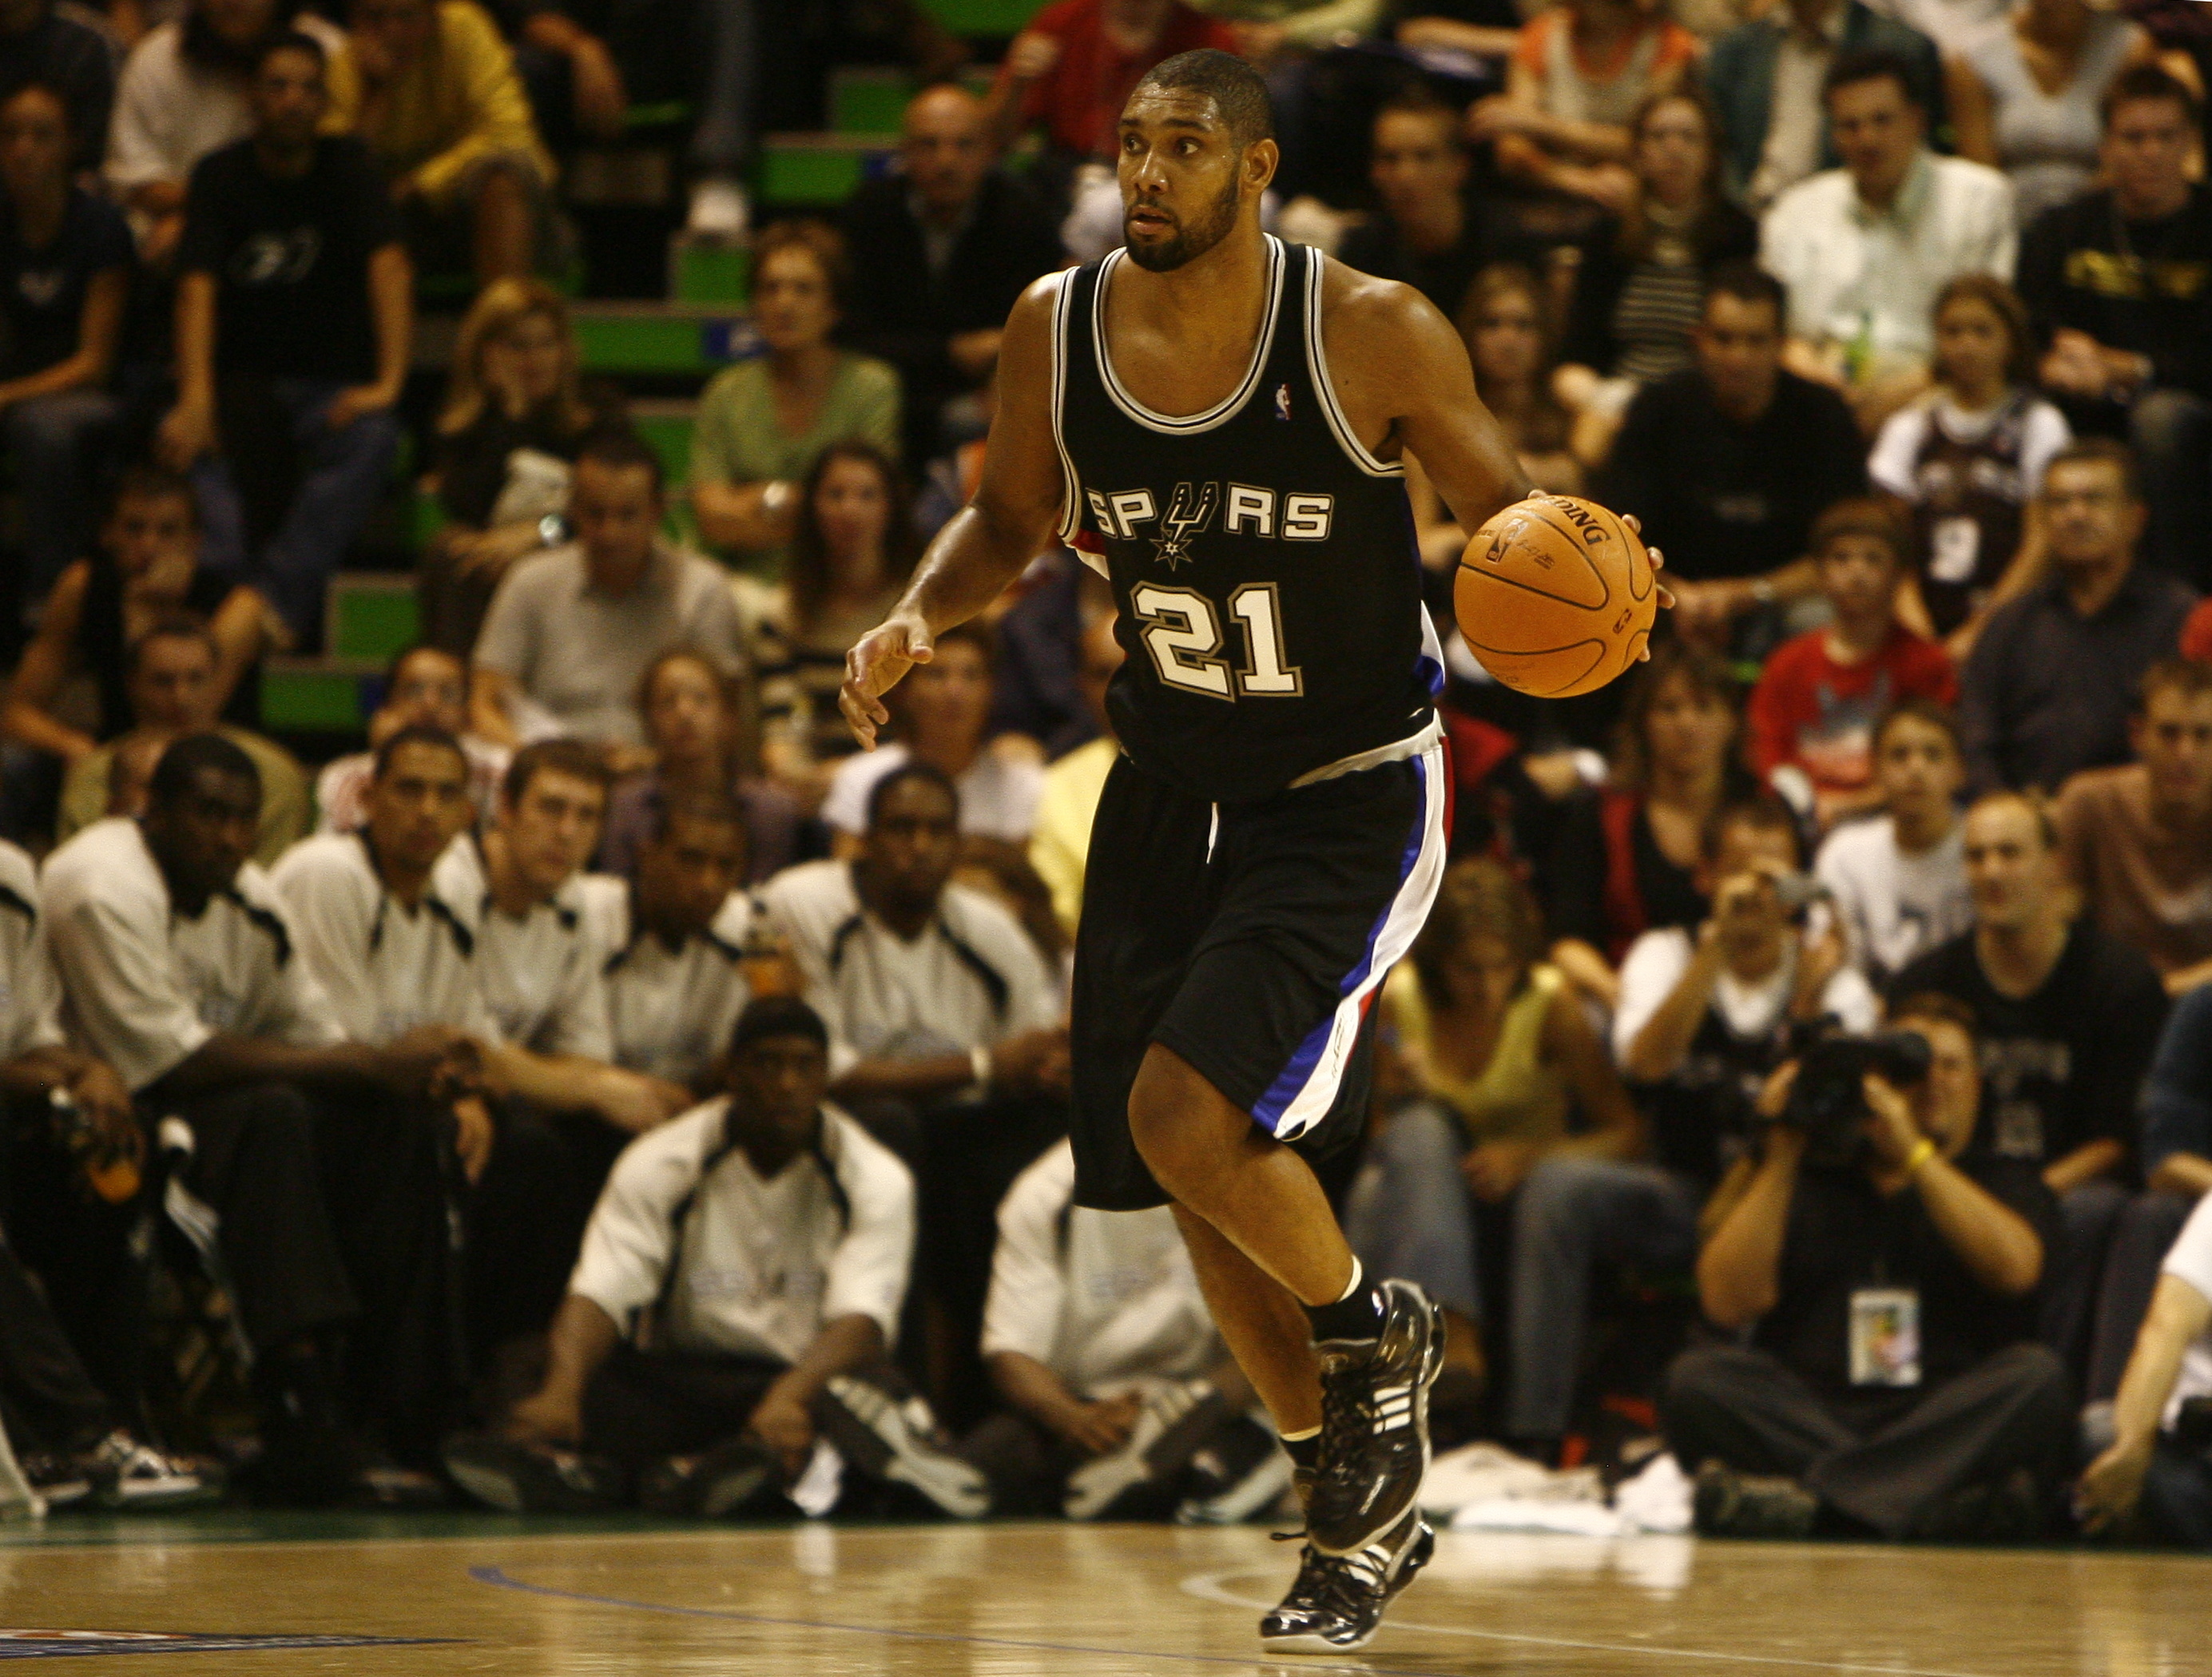 Basketball - NBA Europe Live - San Antonio Spurs vs. ASVEL